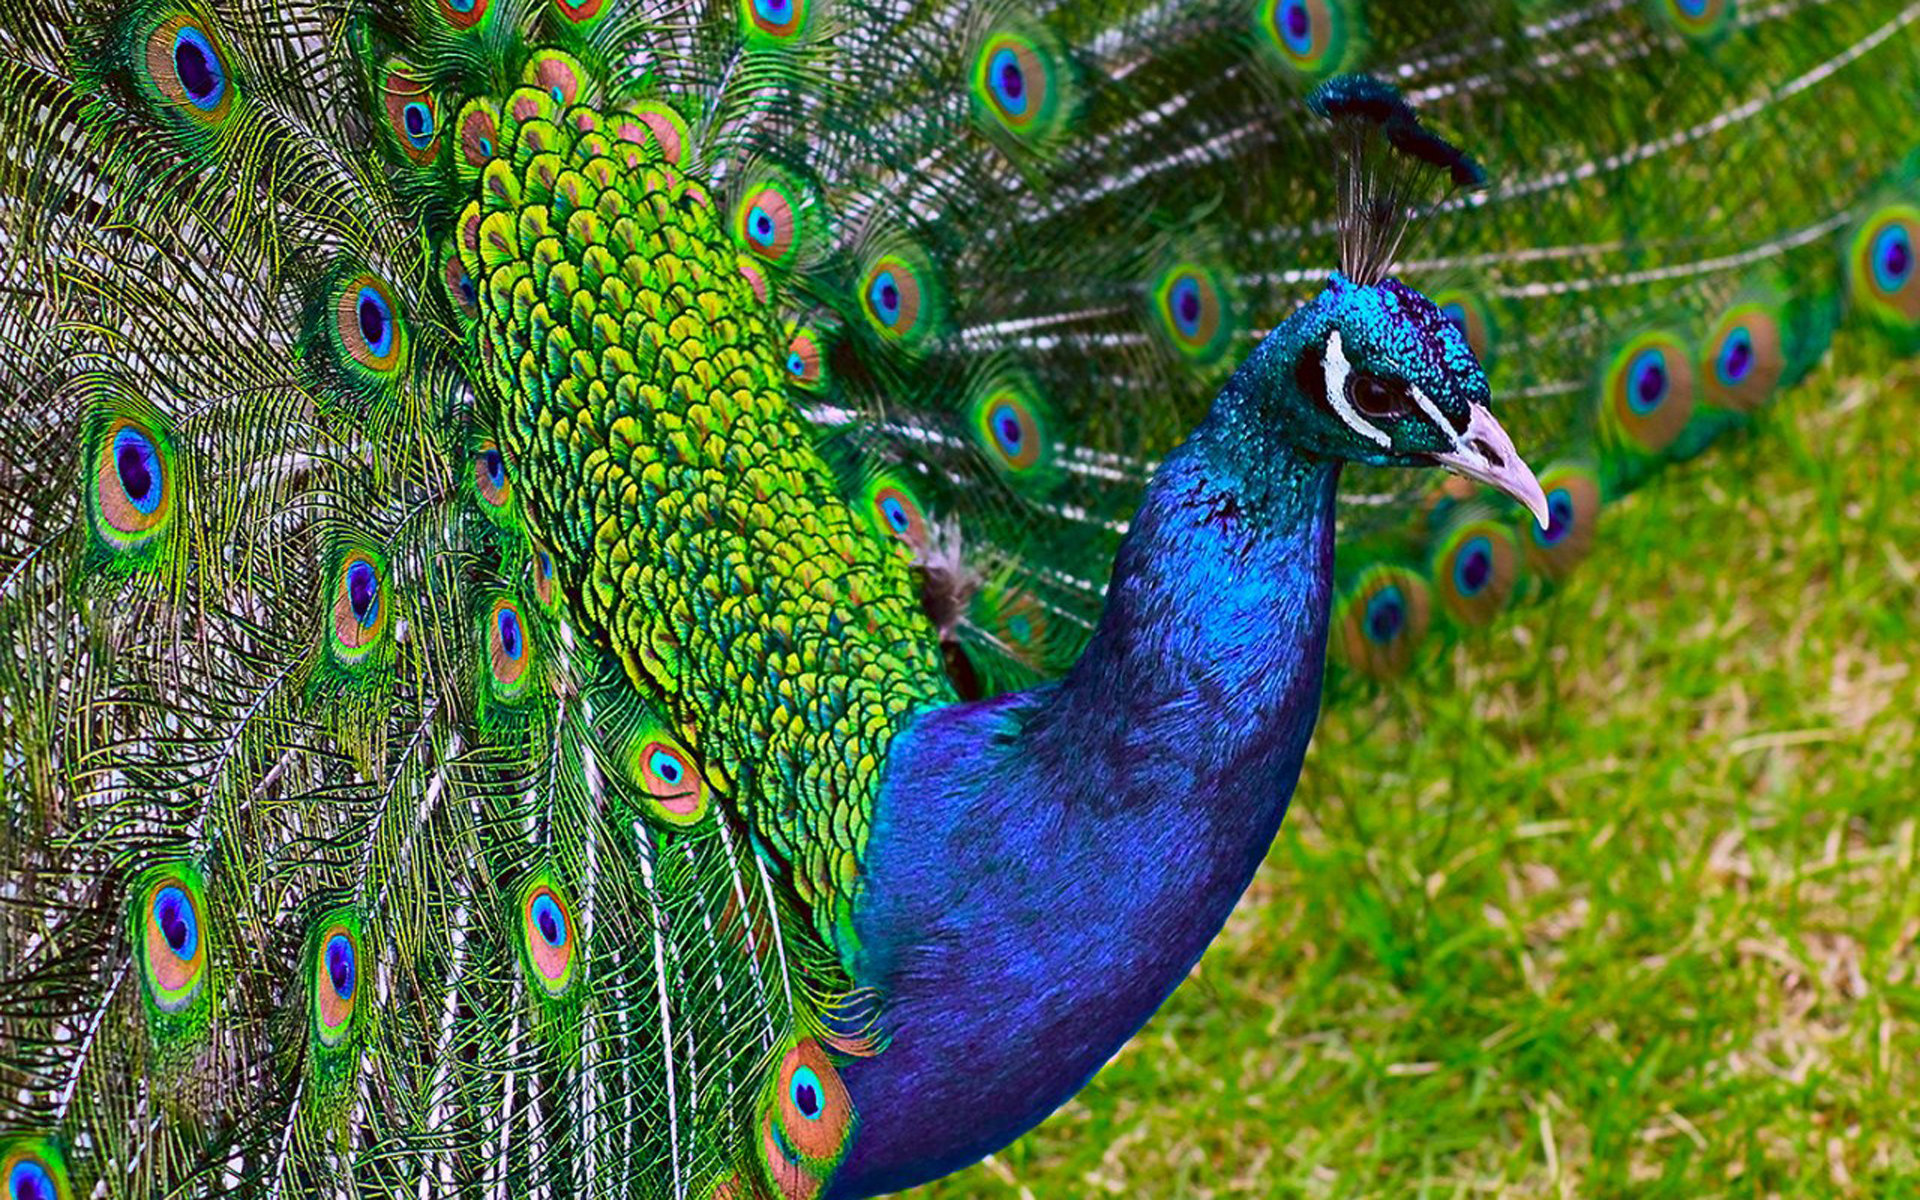 Free Peacock high quality wallpaper ID:151743 for hd 1920x1200 desktop